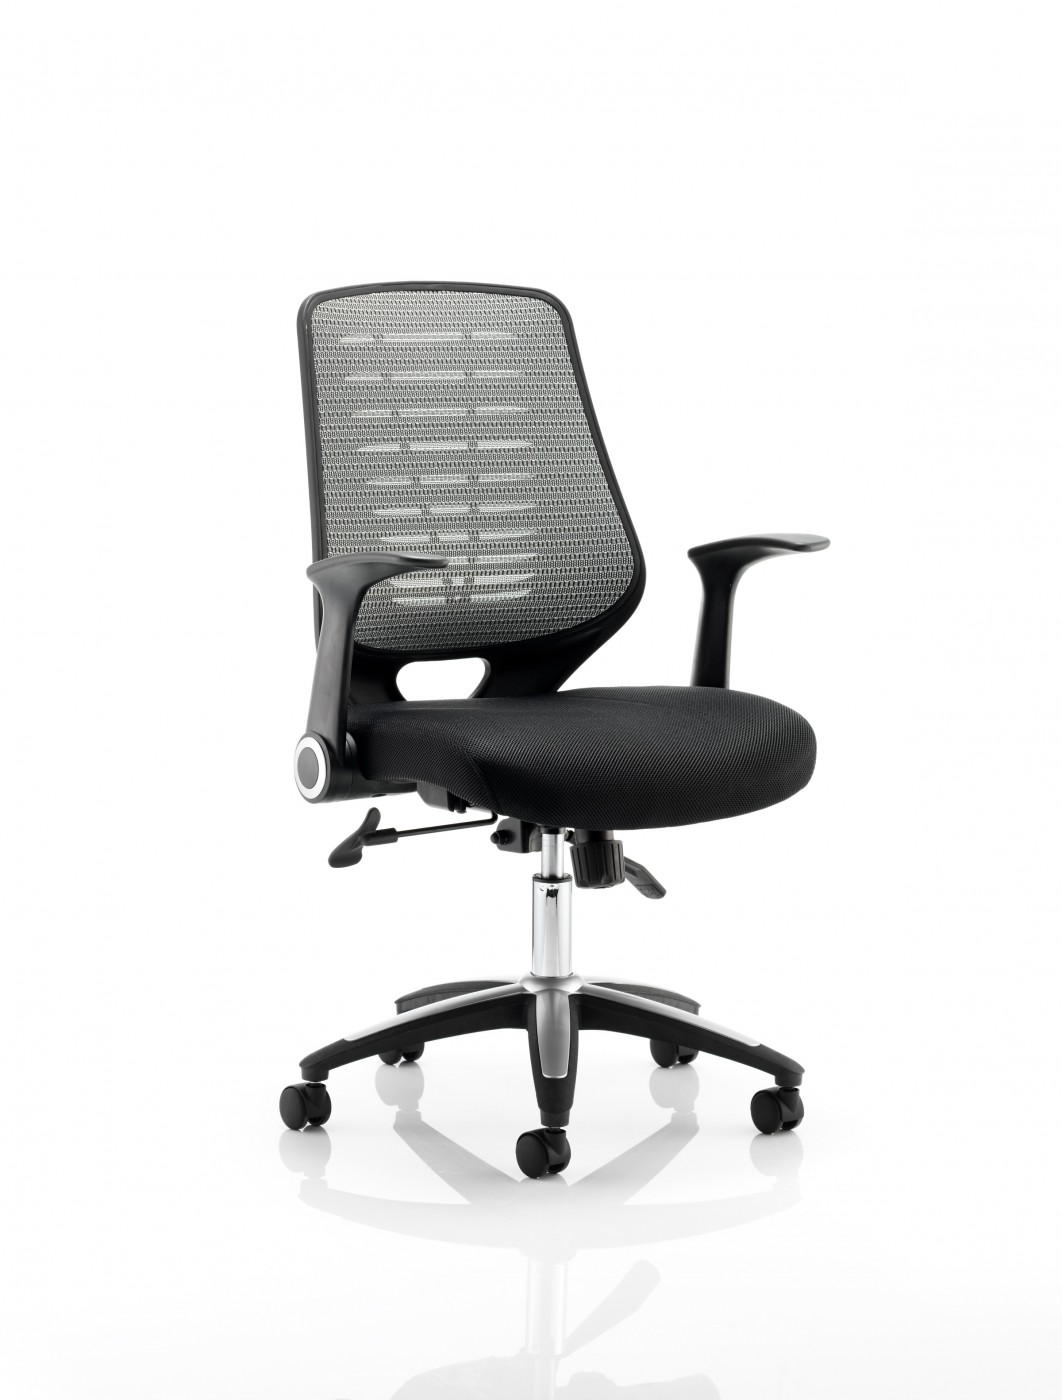 Dynamic Relay Mesh Back Office Chair w  Airmesh Seat and Silver Back    enlarged viewRelay Mesh Back Office Chair w  Airmesh Seat and Silver Back   121  . Silver Office Chair. Home Design Ideas